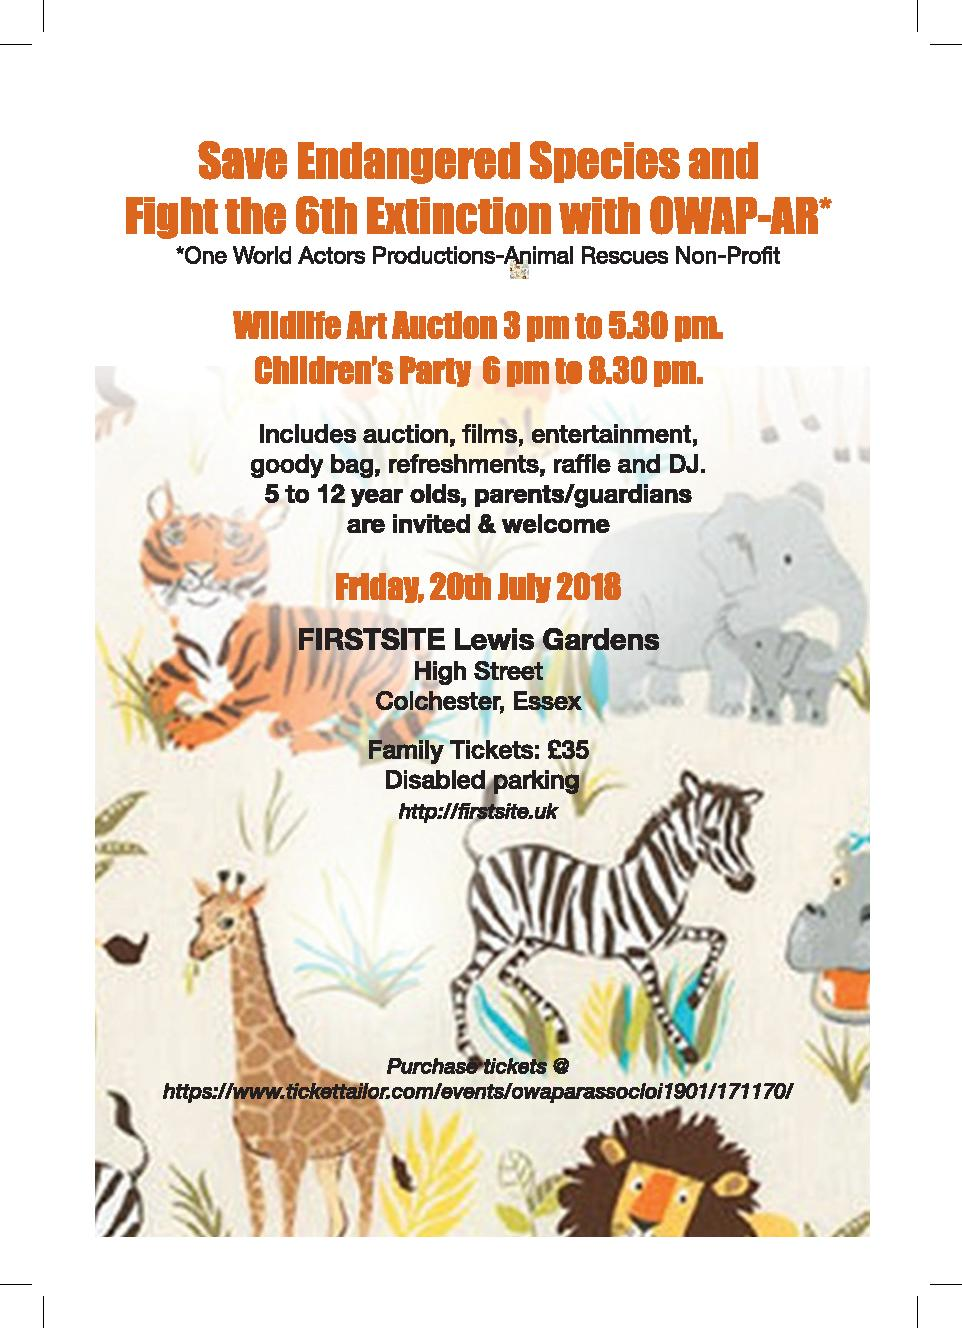 OWAP-AR FINAL for print verso  CharityFlyer Abi s event Colchester July 20thy2018 (1)-page-002.jpg